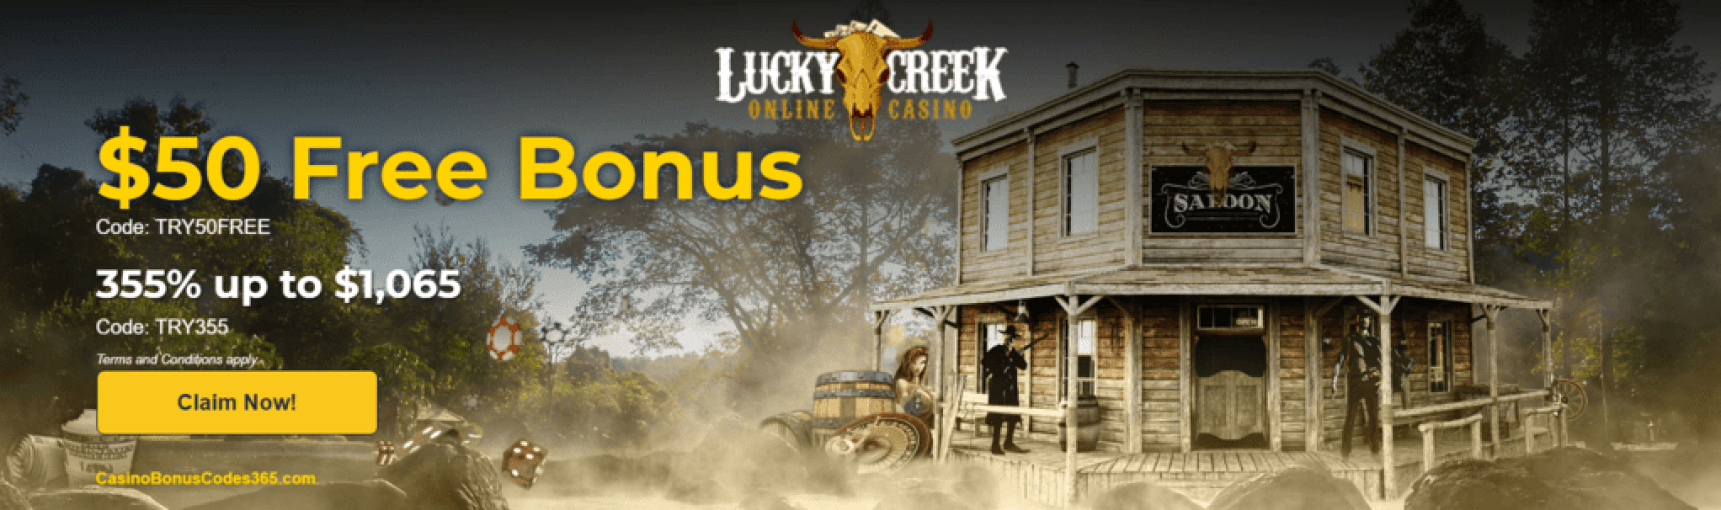 Lucky Creek Casino $50 FREE Chip plus 355% up to $1065